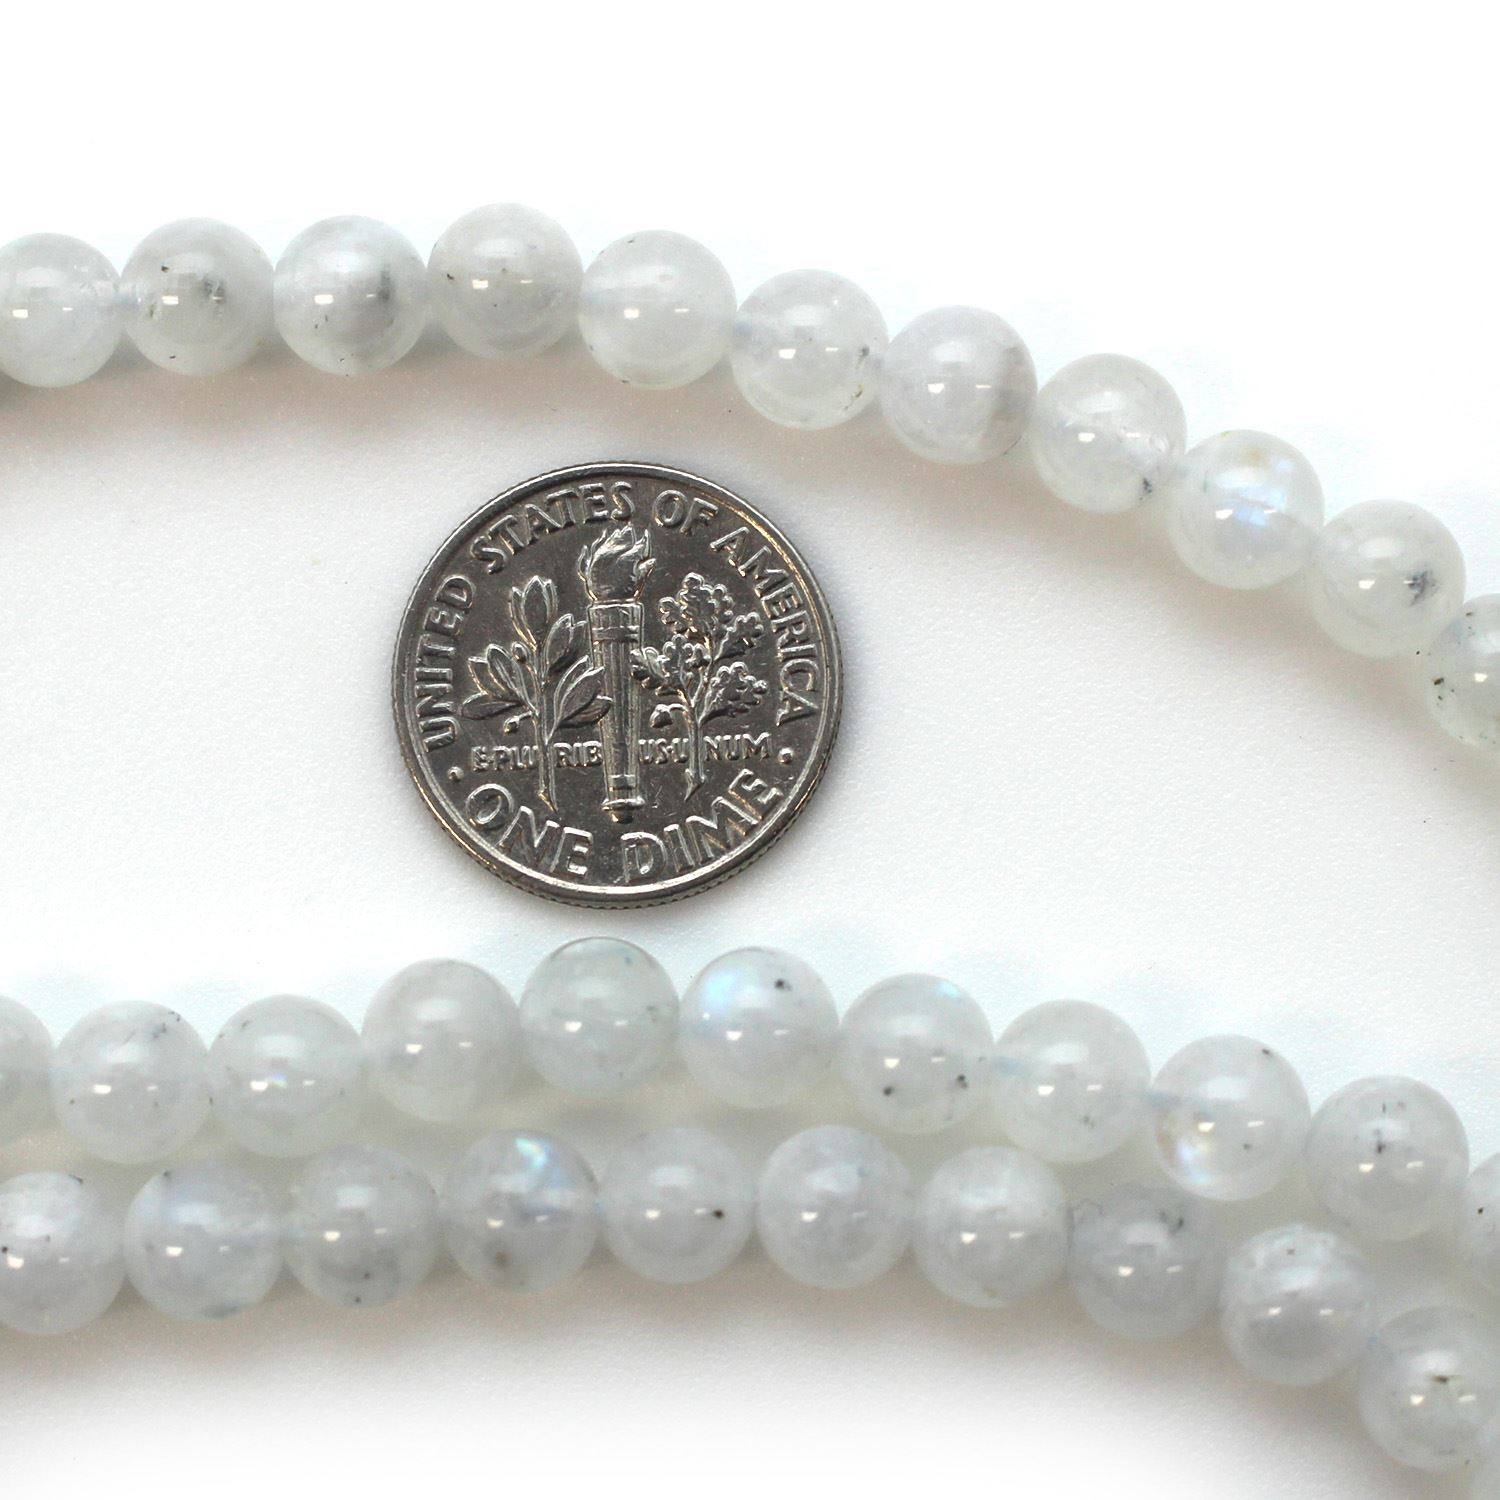 Smooth Round Moonstone Beads - 6.5mm (Sold Per Strand)